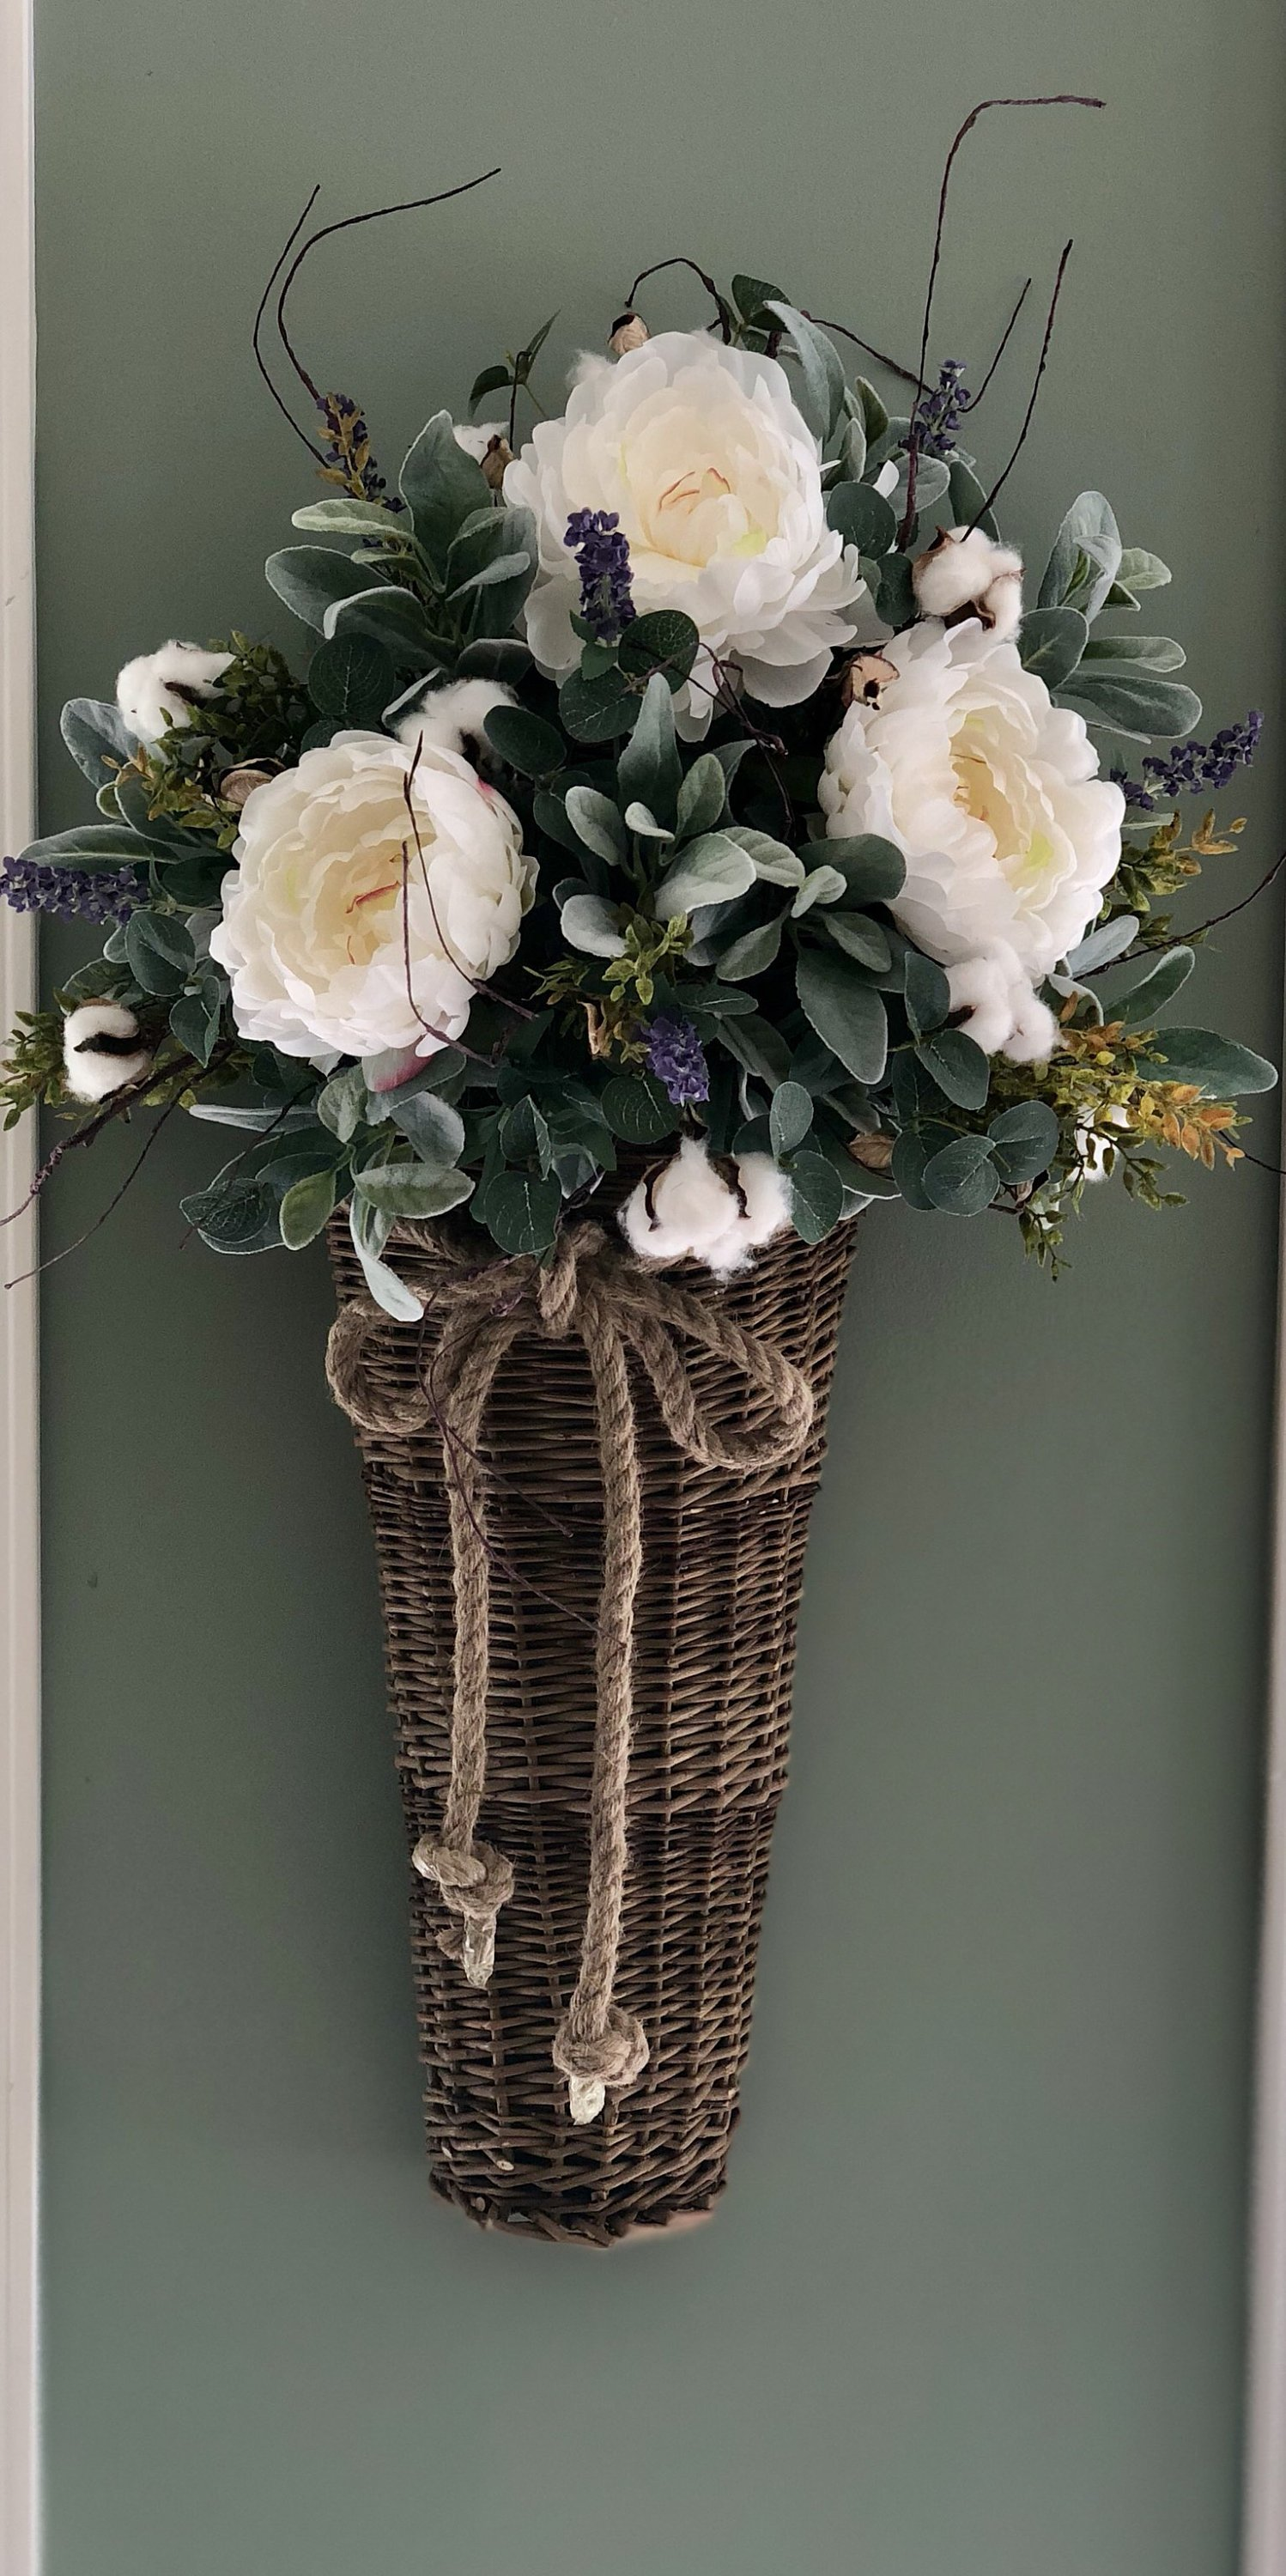 The Sarah Oversized Wall Hanging Basket In 2020 Rustic